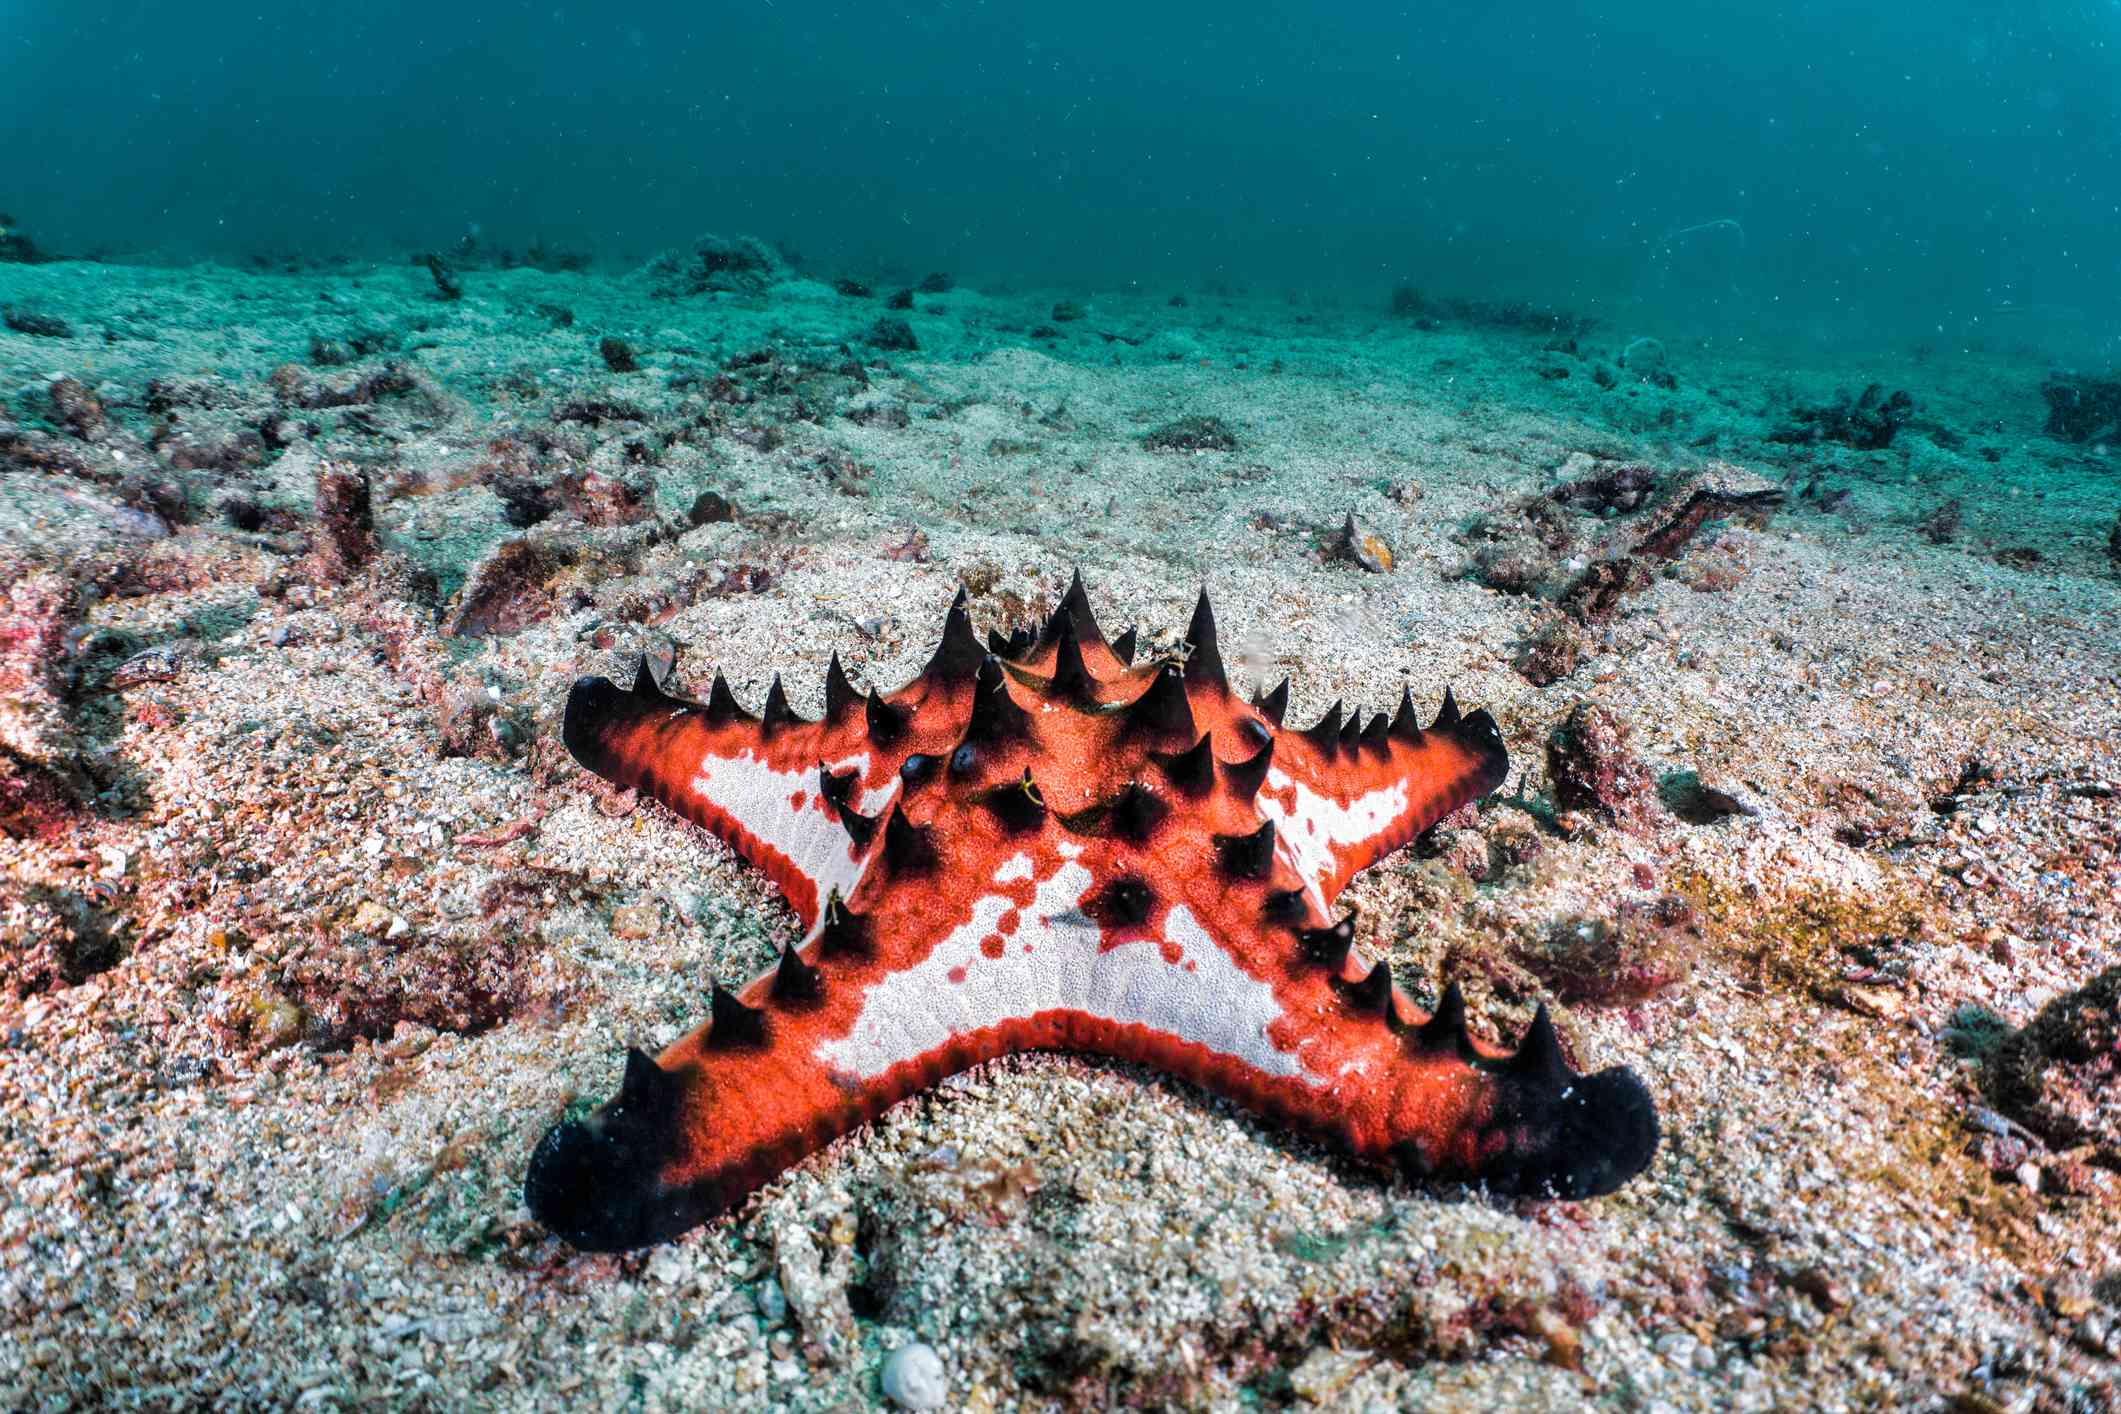 Chocolate chip sea star with black horns